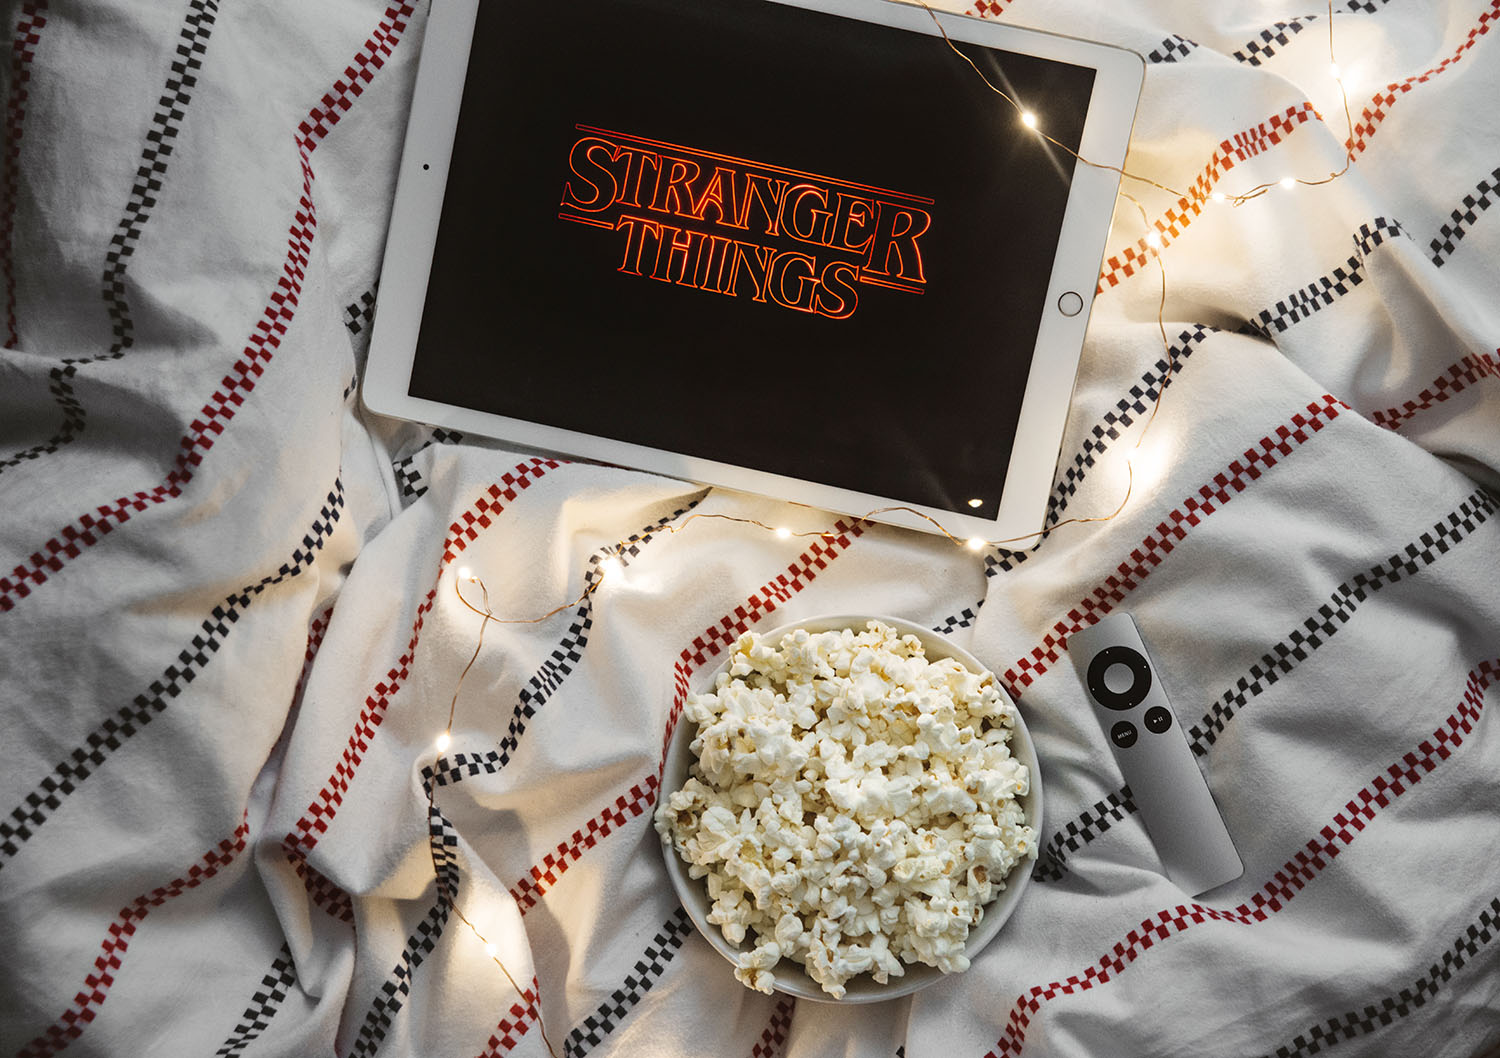 Bästa tv-serierna 2016 / iPad Pro with Stranger Things on Netflix in bed with popcorn